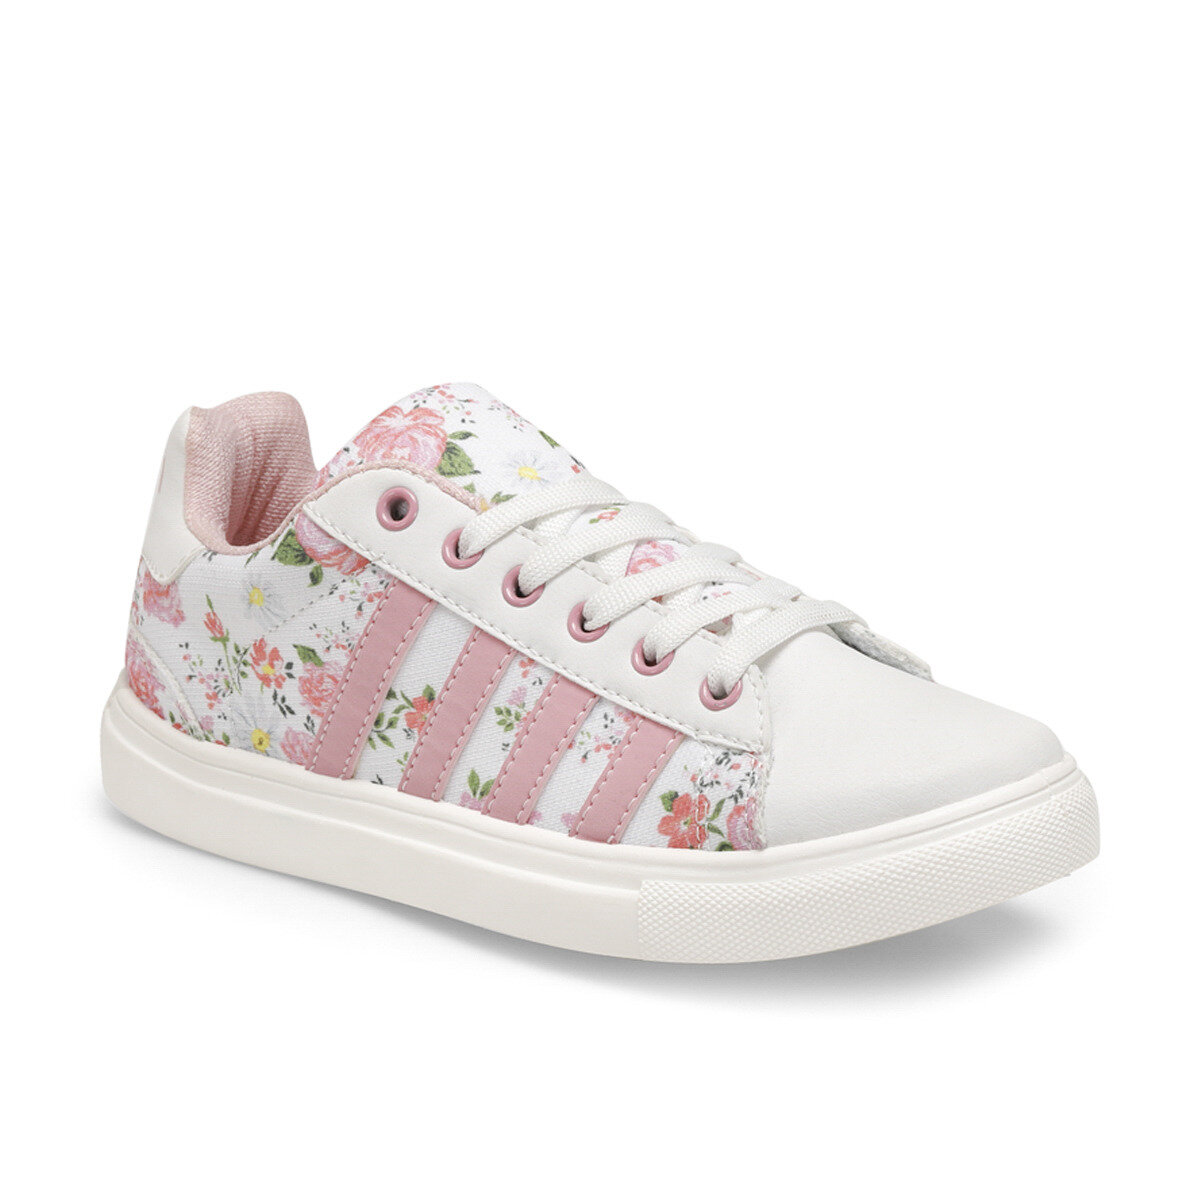 FLO VULDA F White Female Child Sneaker Shoes KINETIX